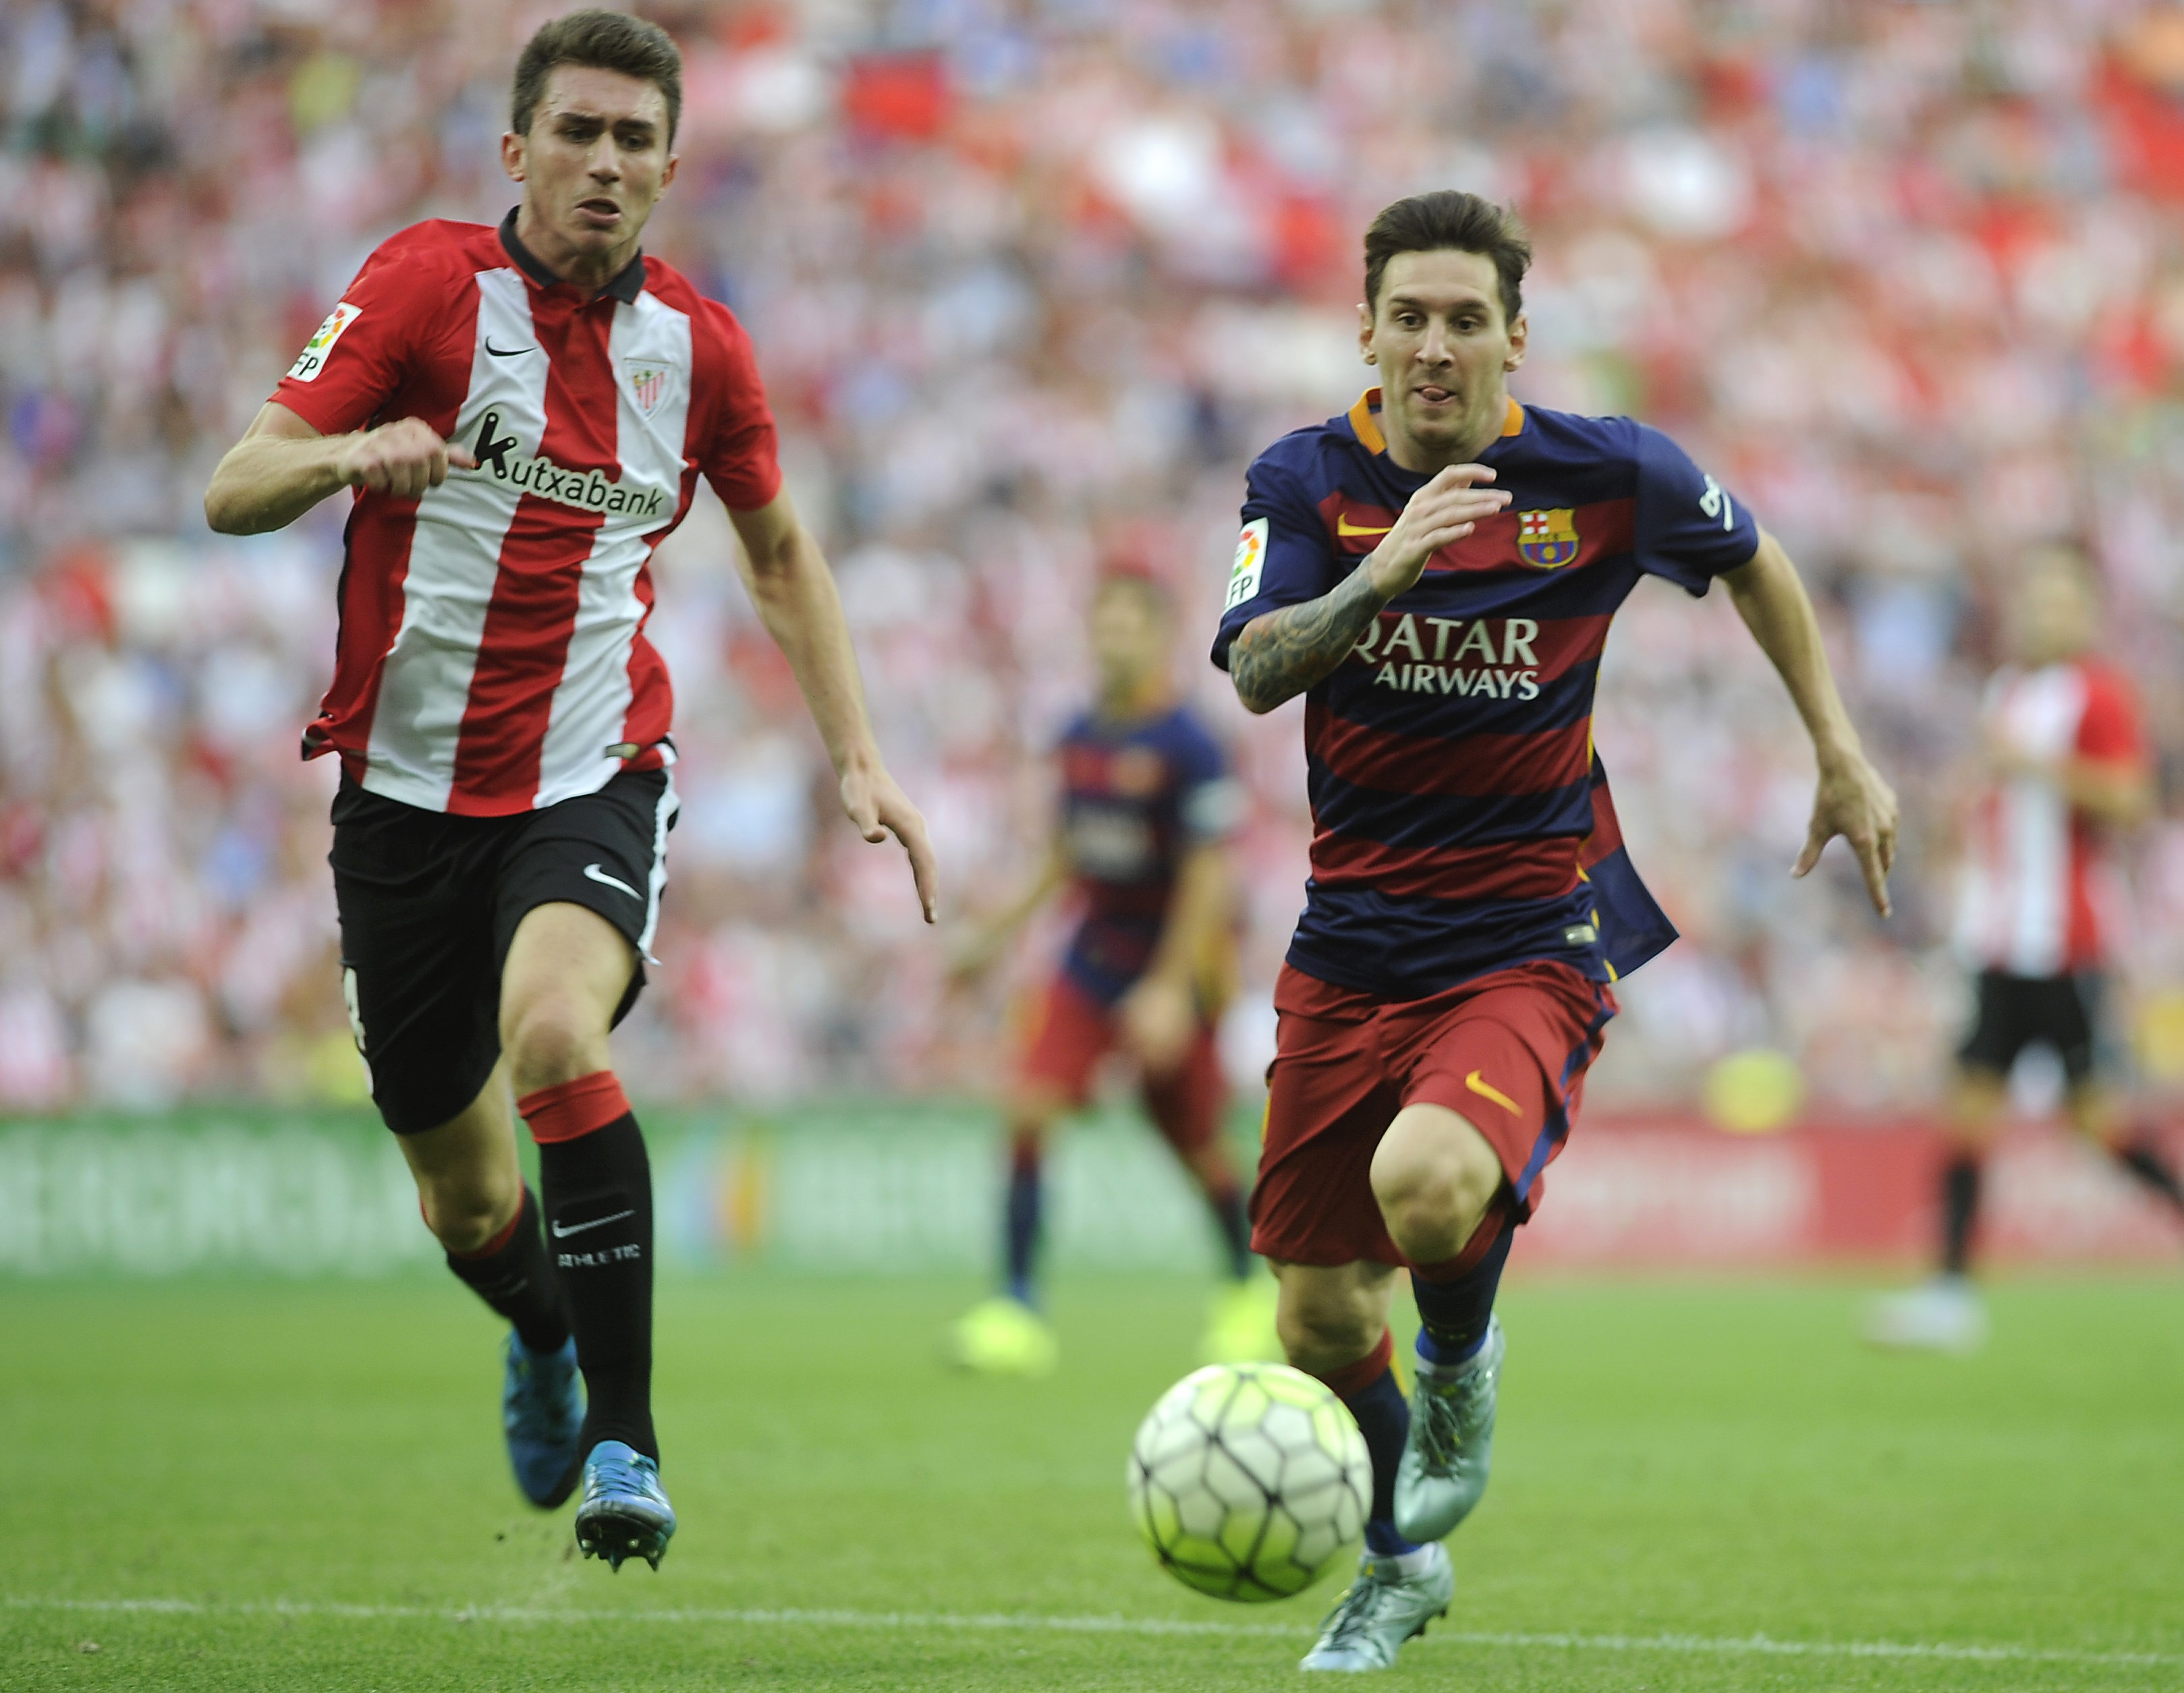 Rumour: Manchester United make contact with Aymeric Laporte's representatives ahead of transfer